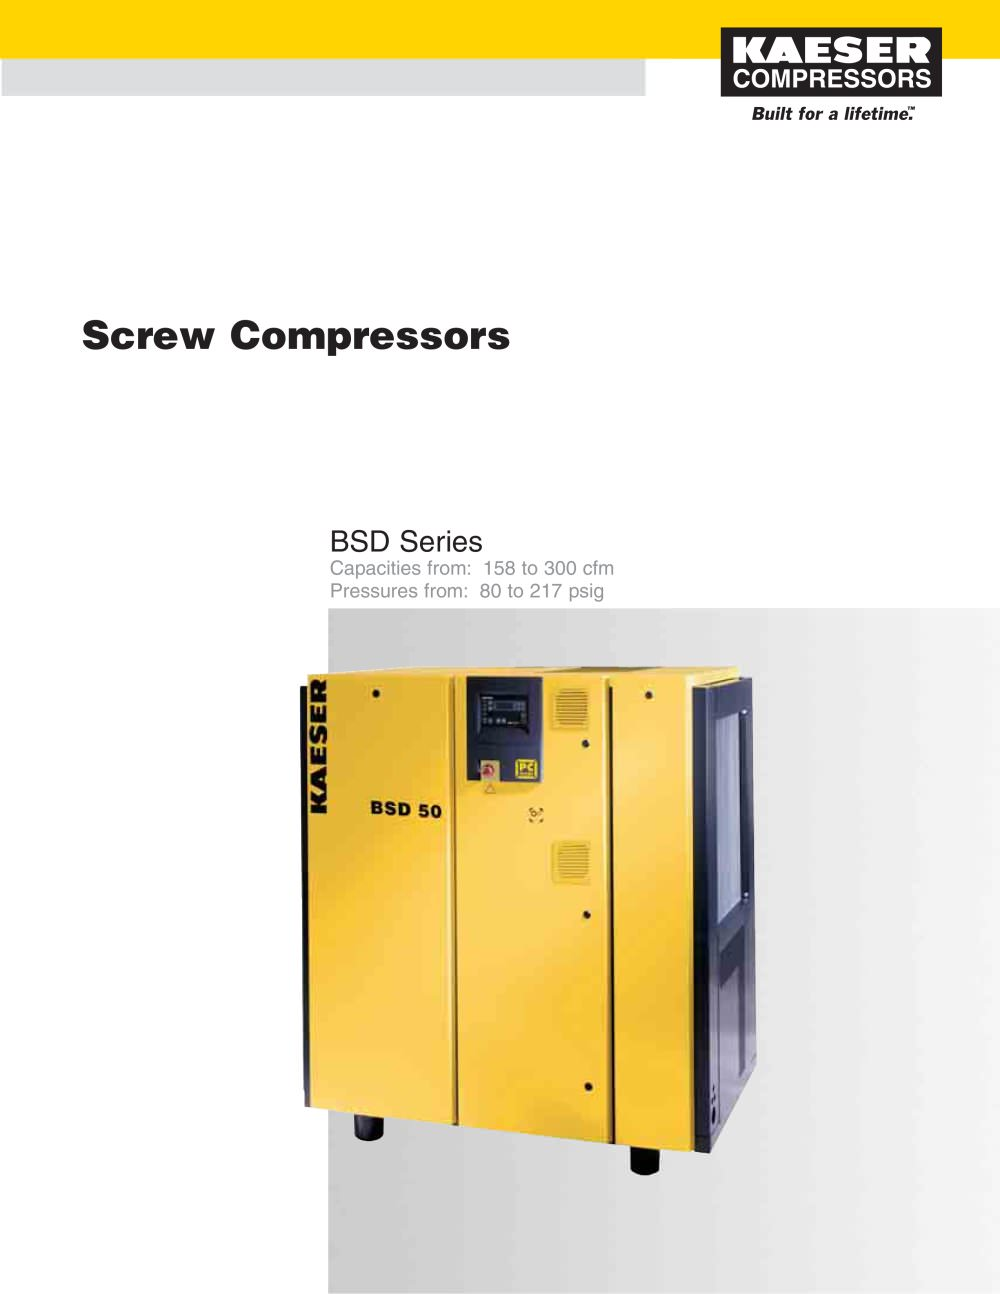 BSD Series Compressors - 1 / 6 Pages